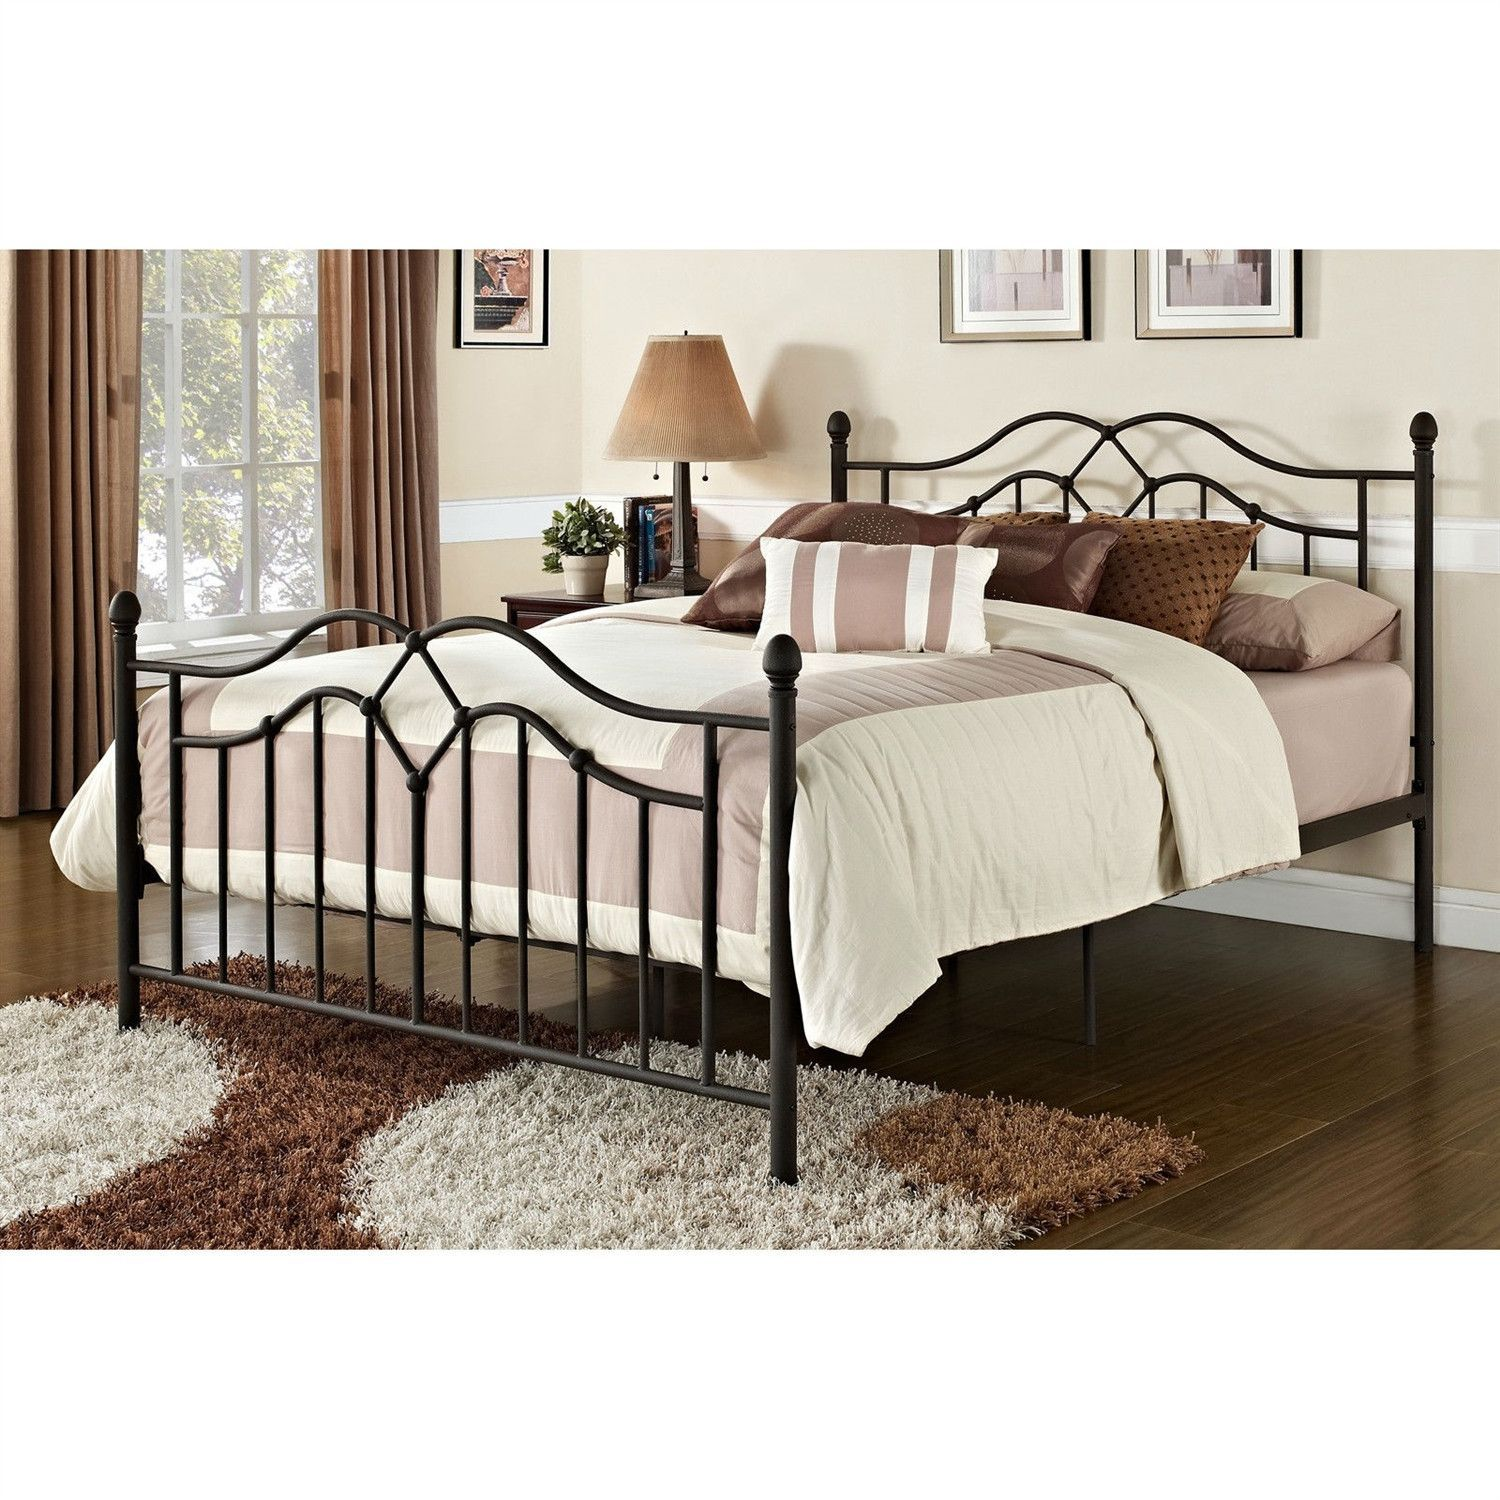 Queen size Brushed Bronze Metal Bed with Headboard and Footboard ...